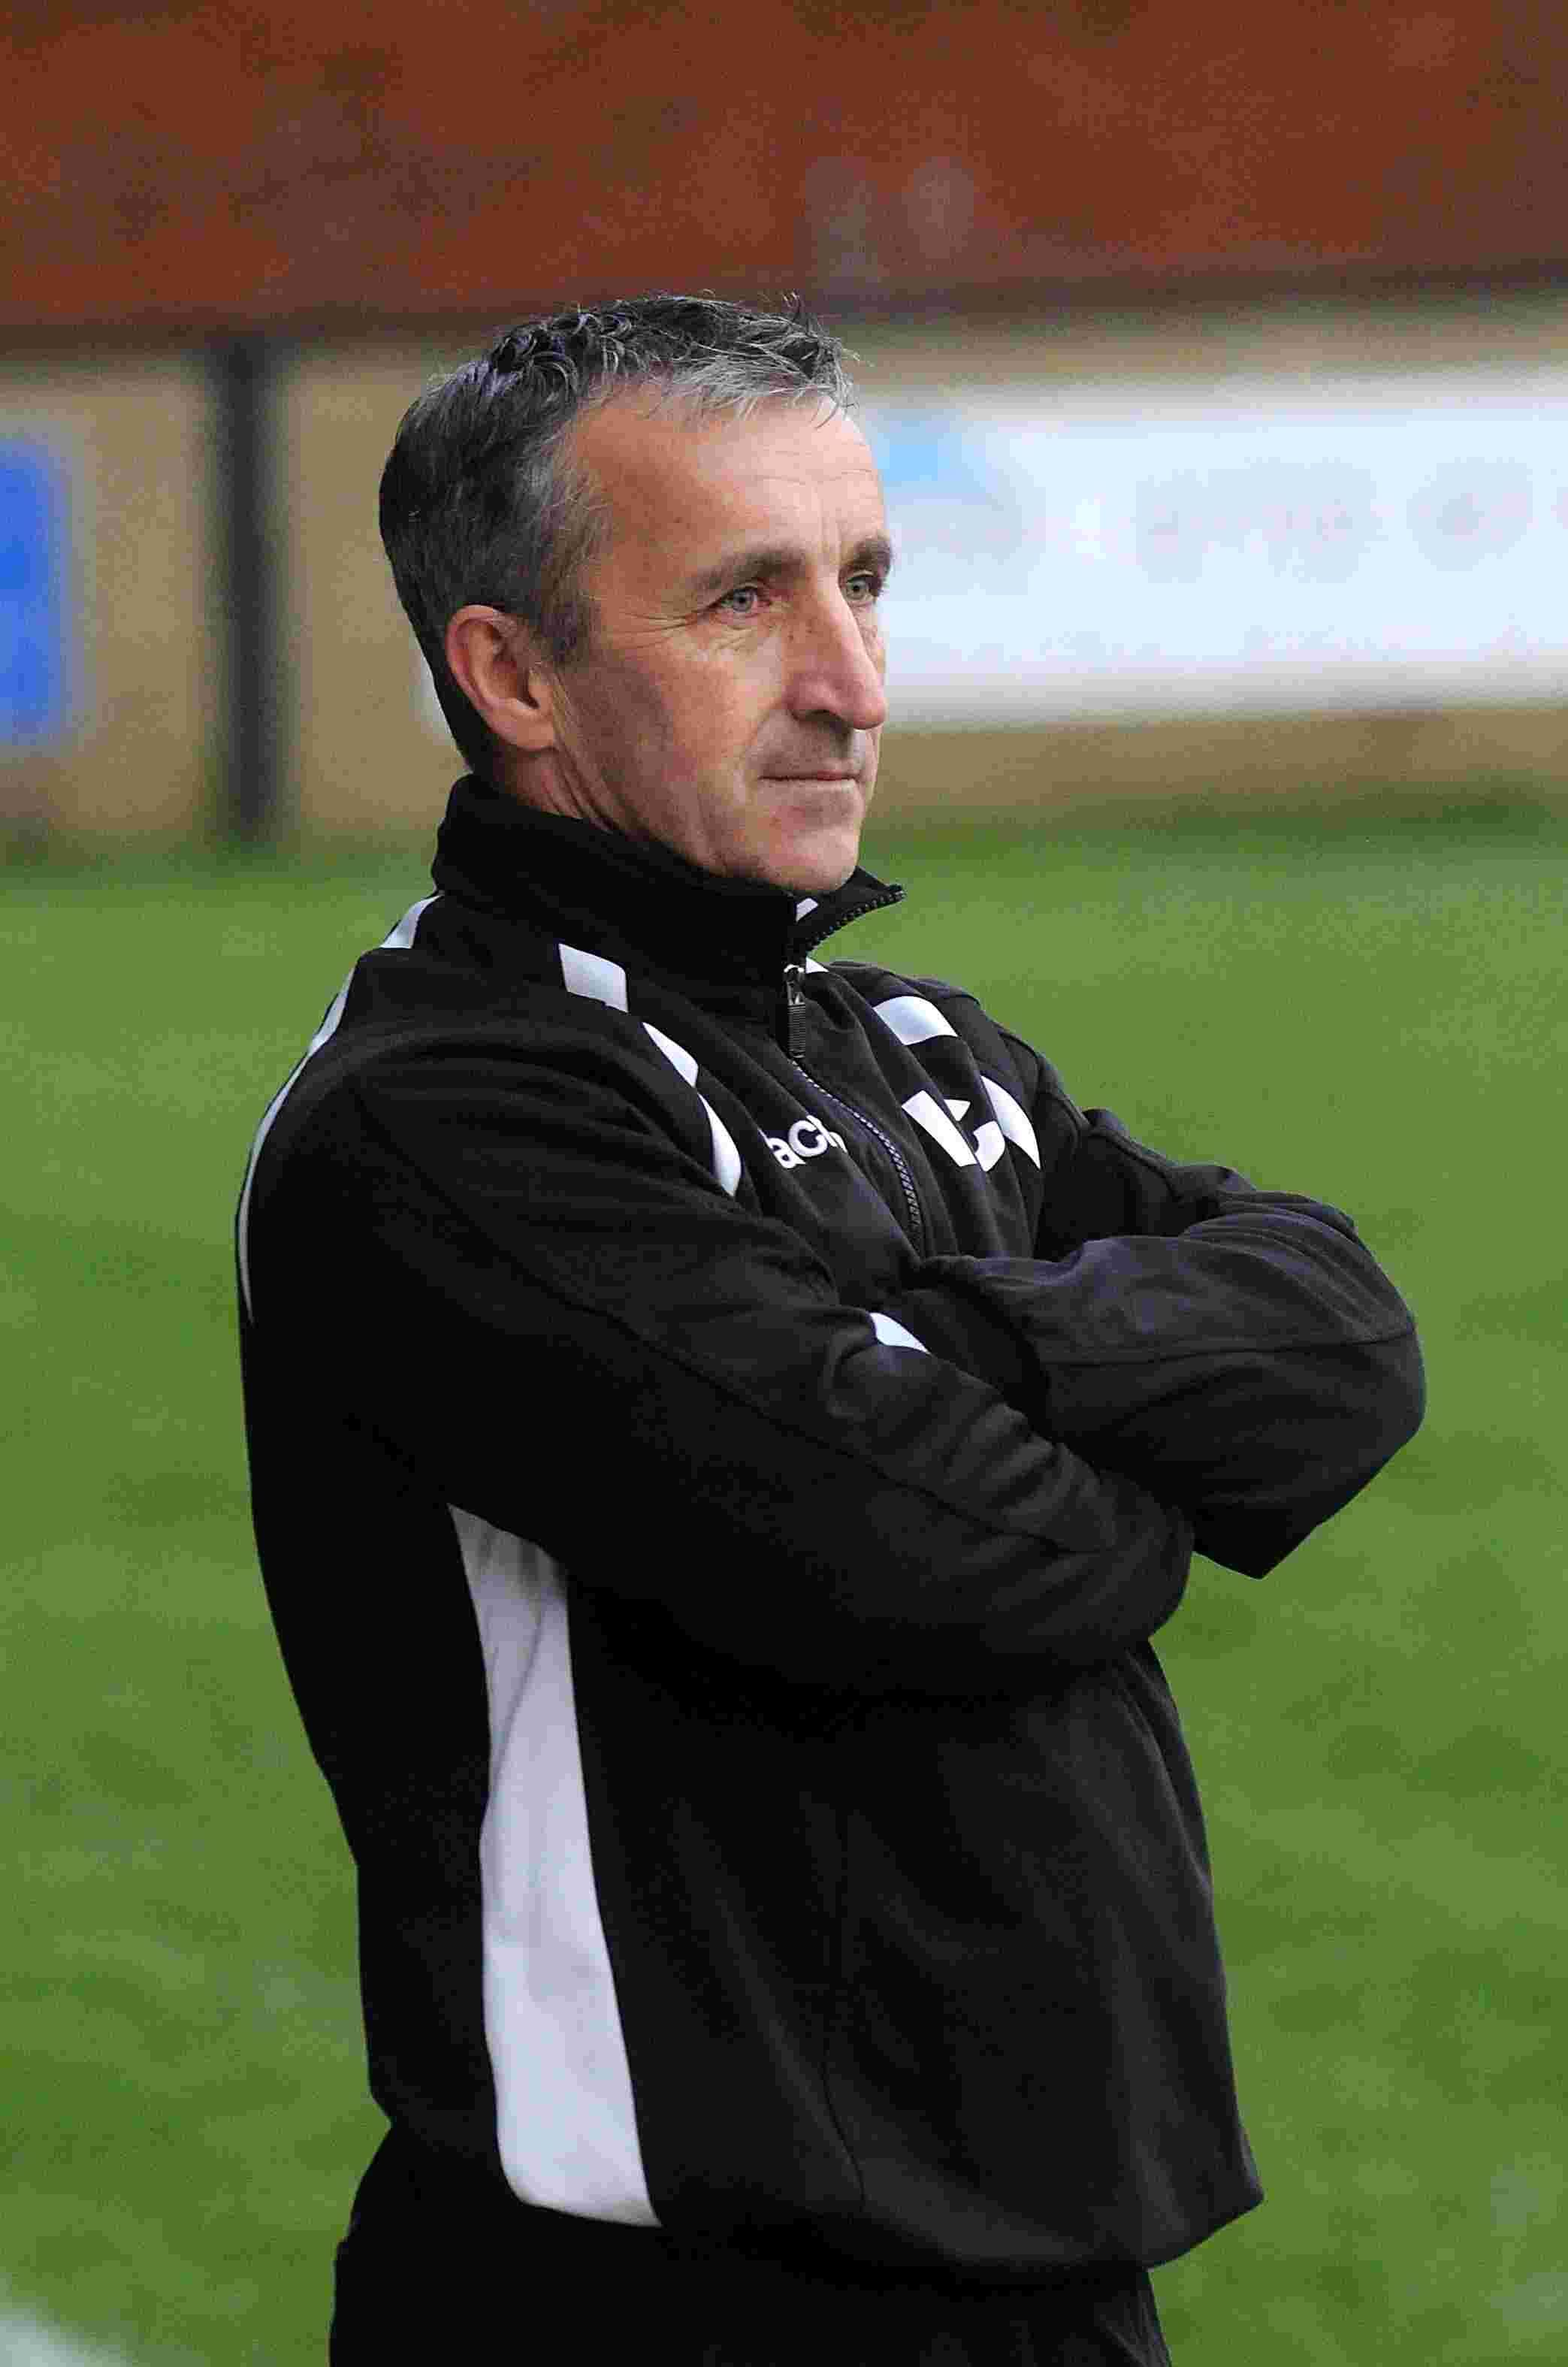 Bemerton boss Ian Chalk hopes to mastermind an FA Vase upset on Saturday.